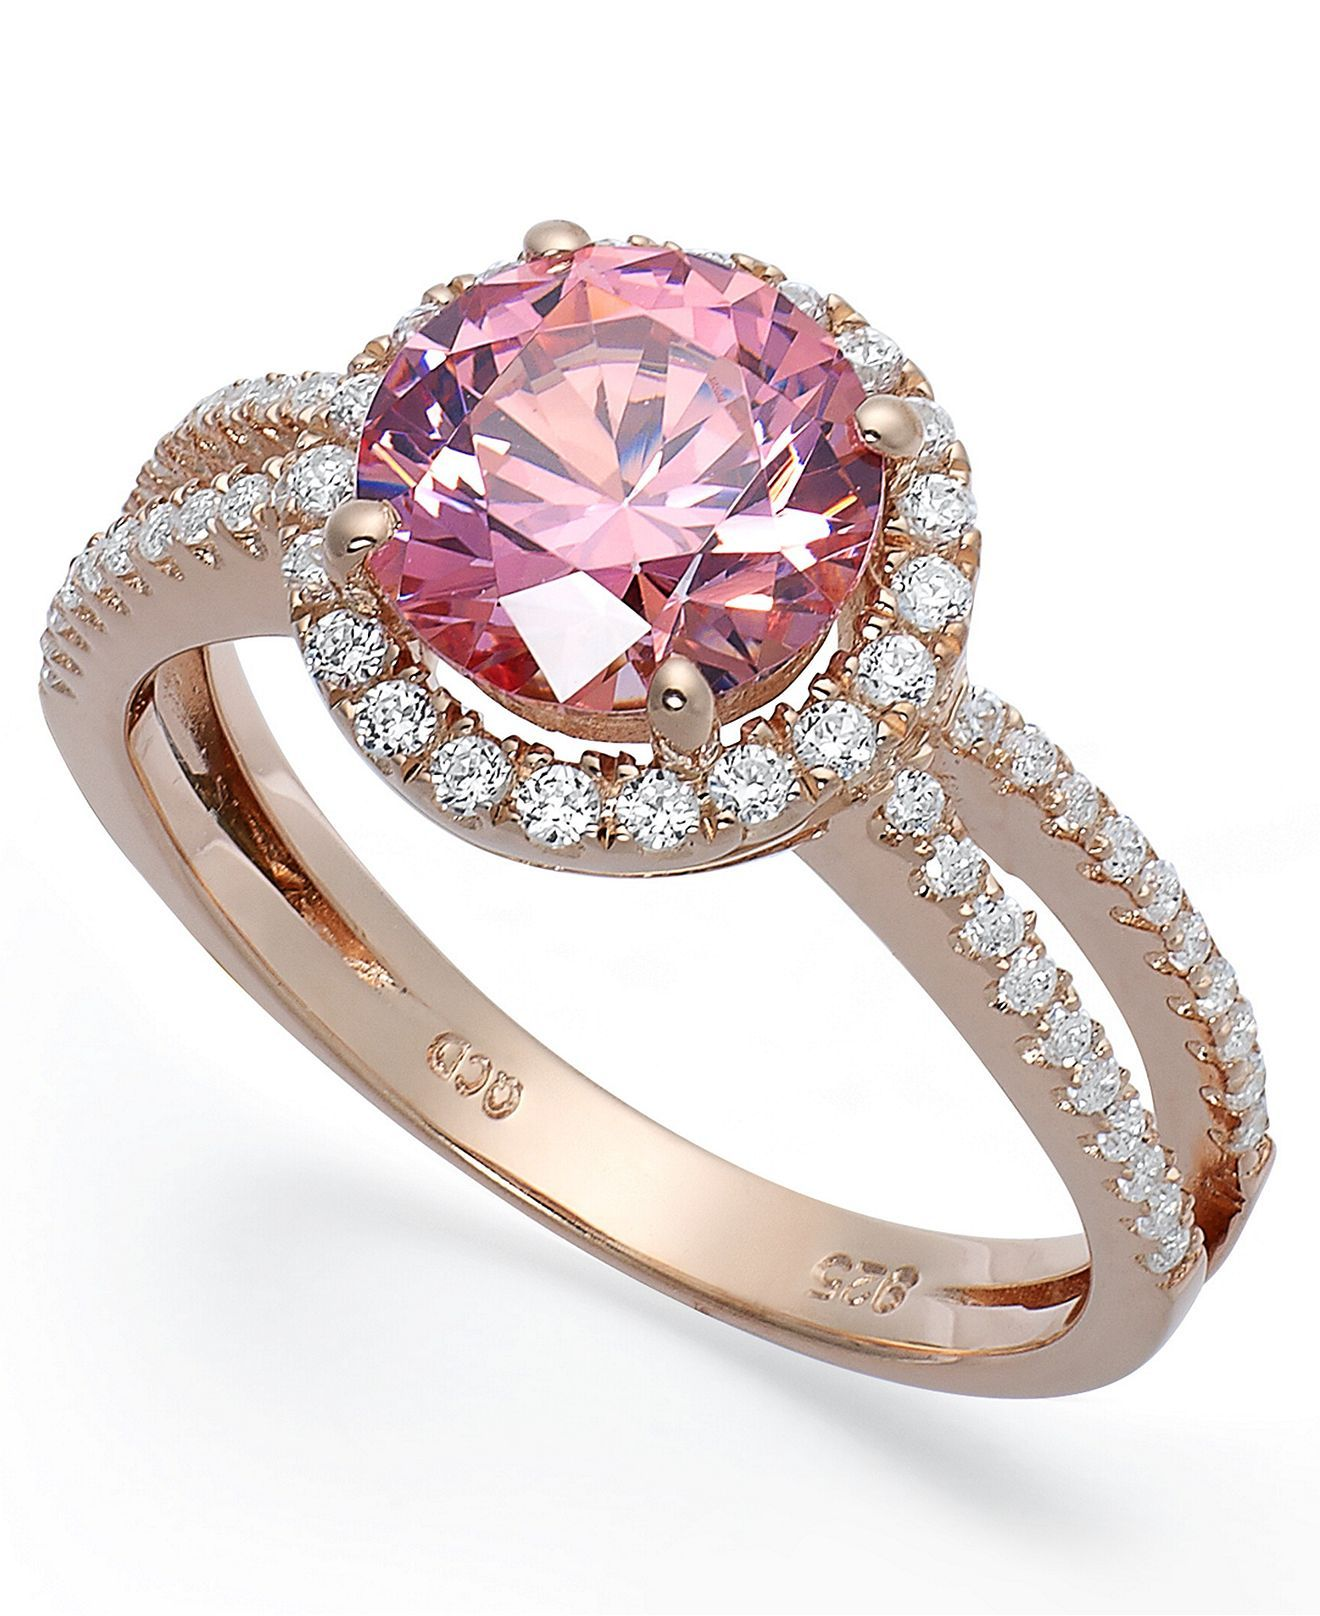 14k Rose Gold Over Sterling Silver Ring Pink Cubic Zirconia Wth Swarovski Elements Ring 4 3 4 Ct T Pink Gold Ring Engagement Sterling Silver Jewelry Jewelry